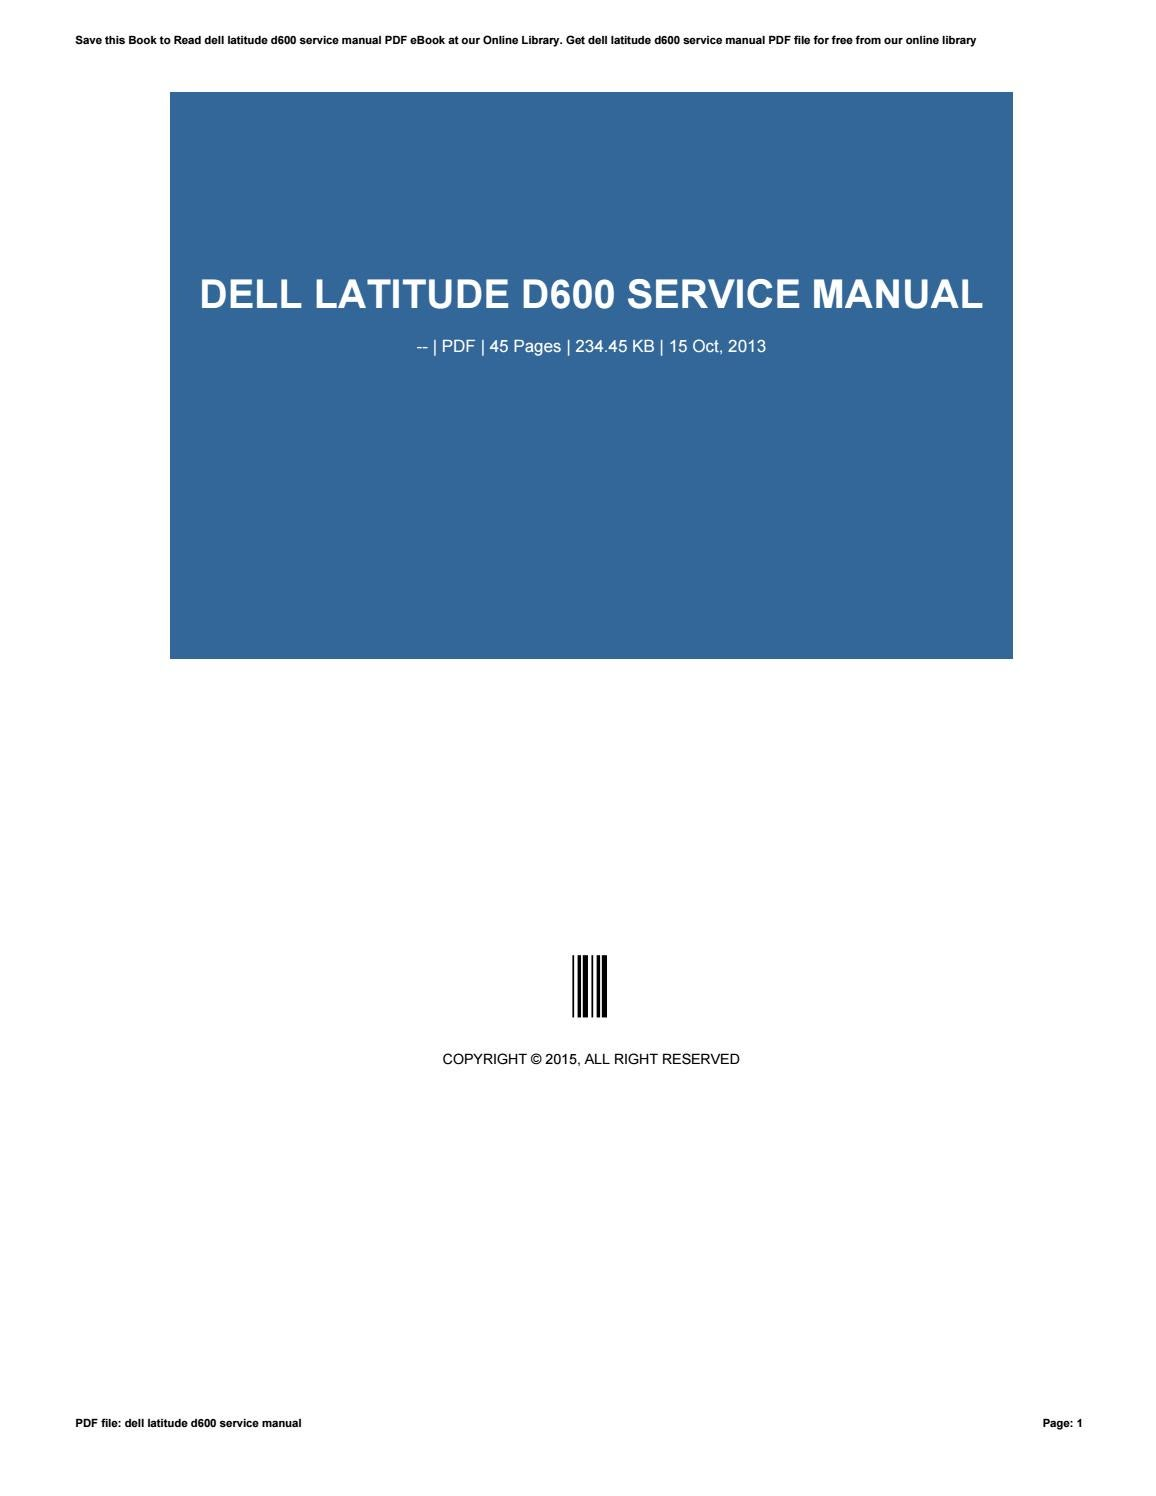 dell latitude d600 service manual by sroff5 issuu dell latitude d620 manual pdf dell latitude d620 manual download